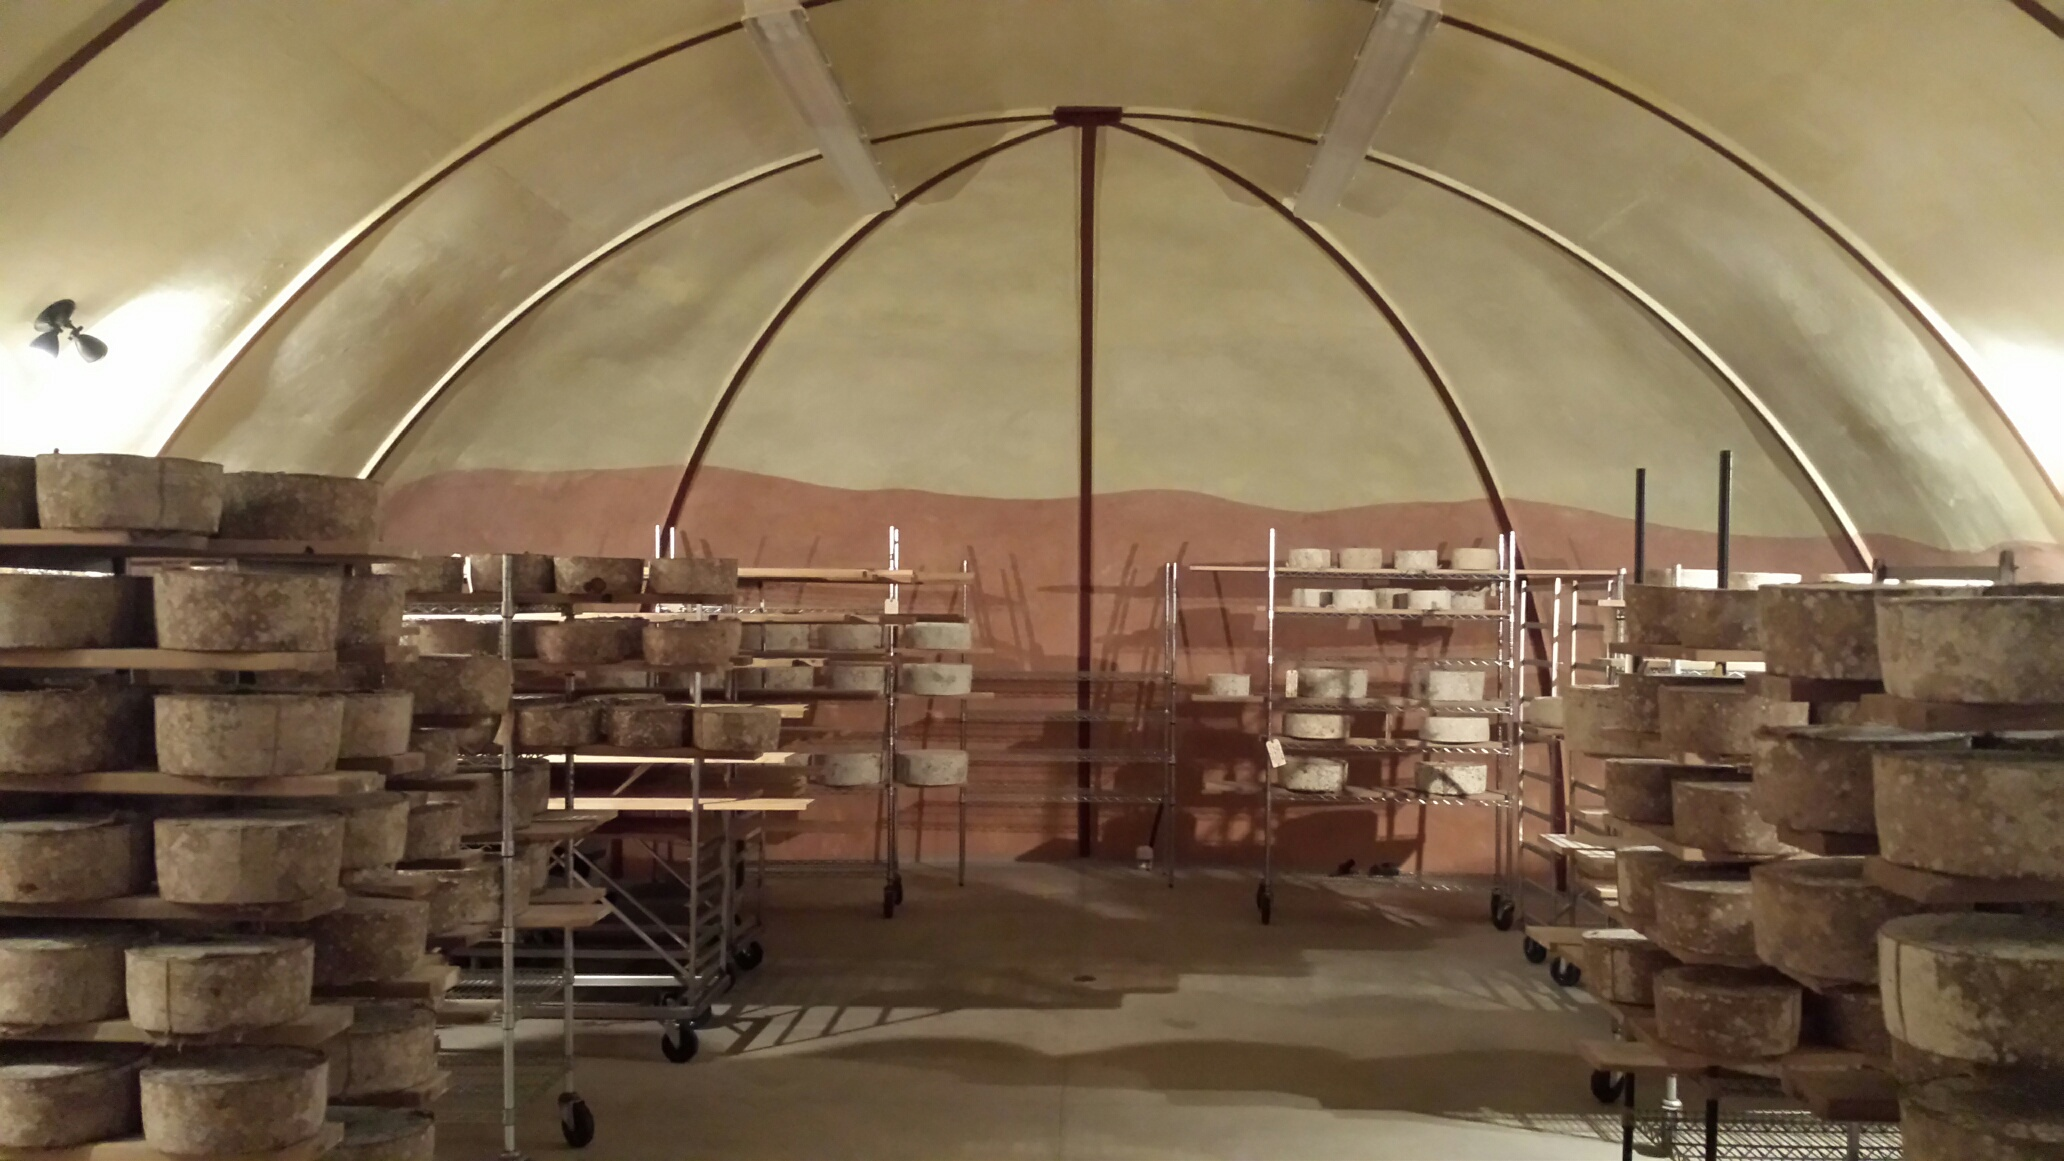 Inside Lehner's cheese cave. Photo by Willi Lehner